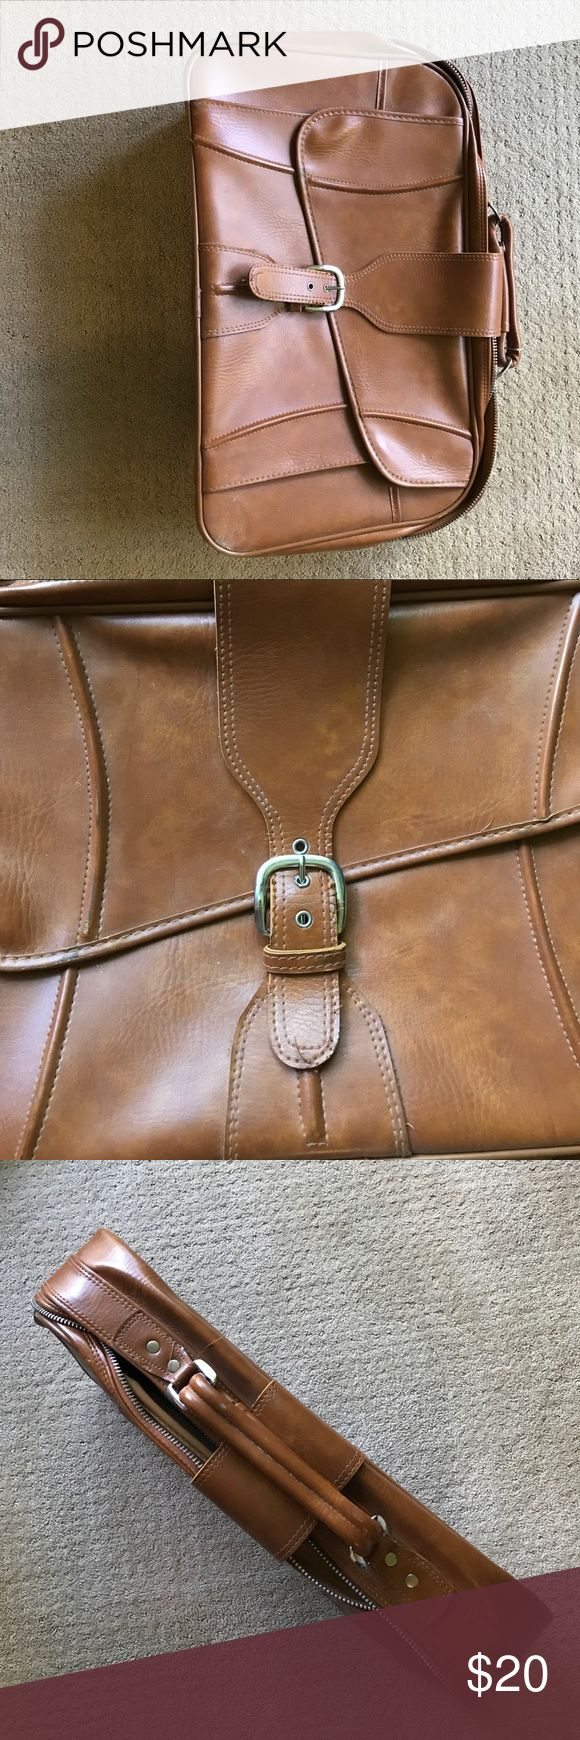 """Men's suitcase. Brown Men's vintage suitcase. brown. Zipper in working condition. Large. 26""""x16""""x8"""". Bantam Travelware luggage. bantam Bags Luggage & Travel Bags"""